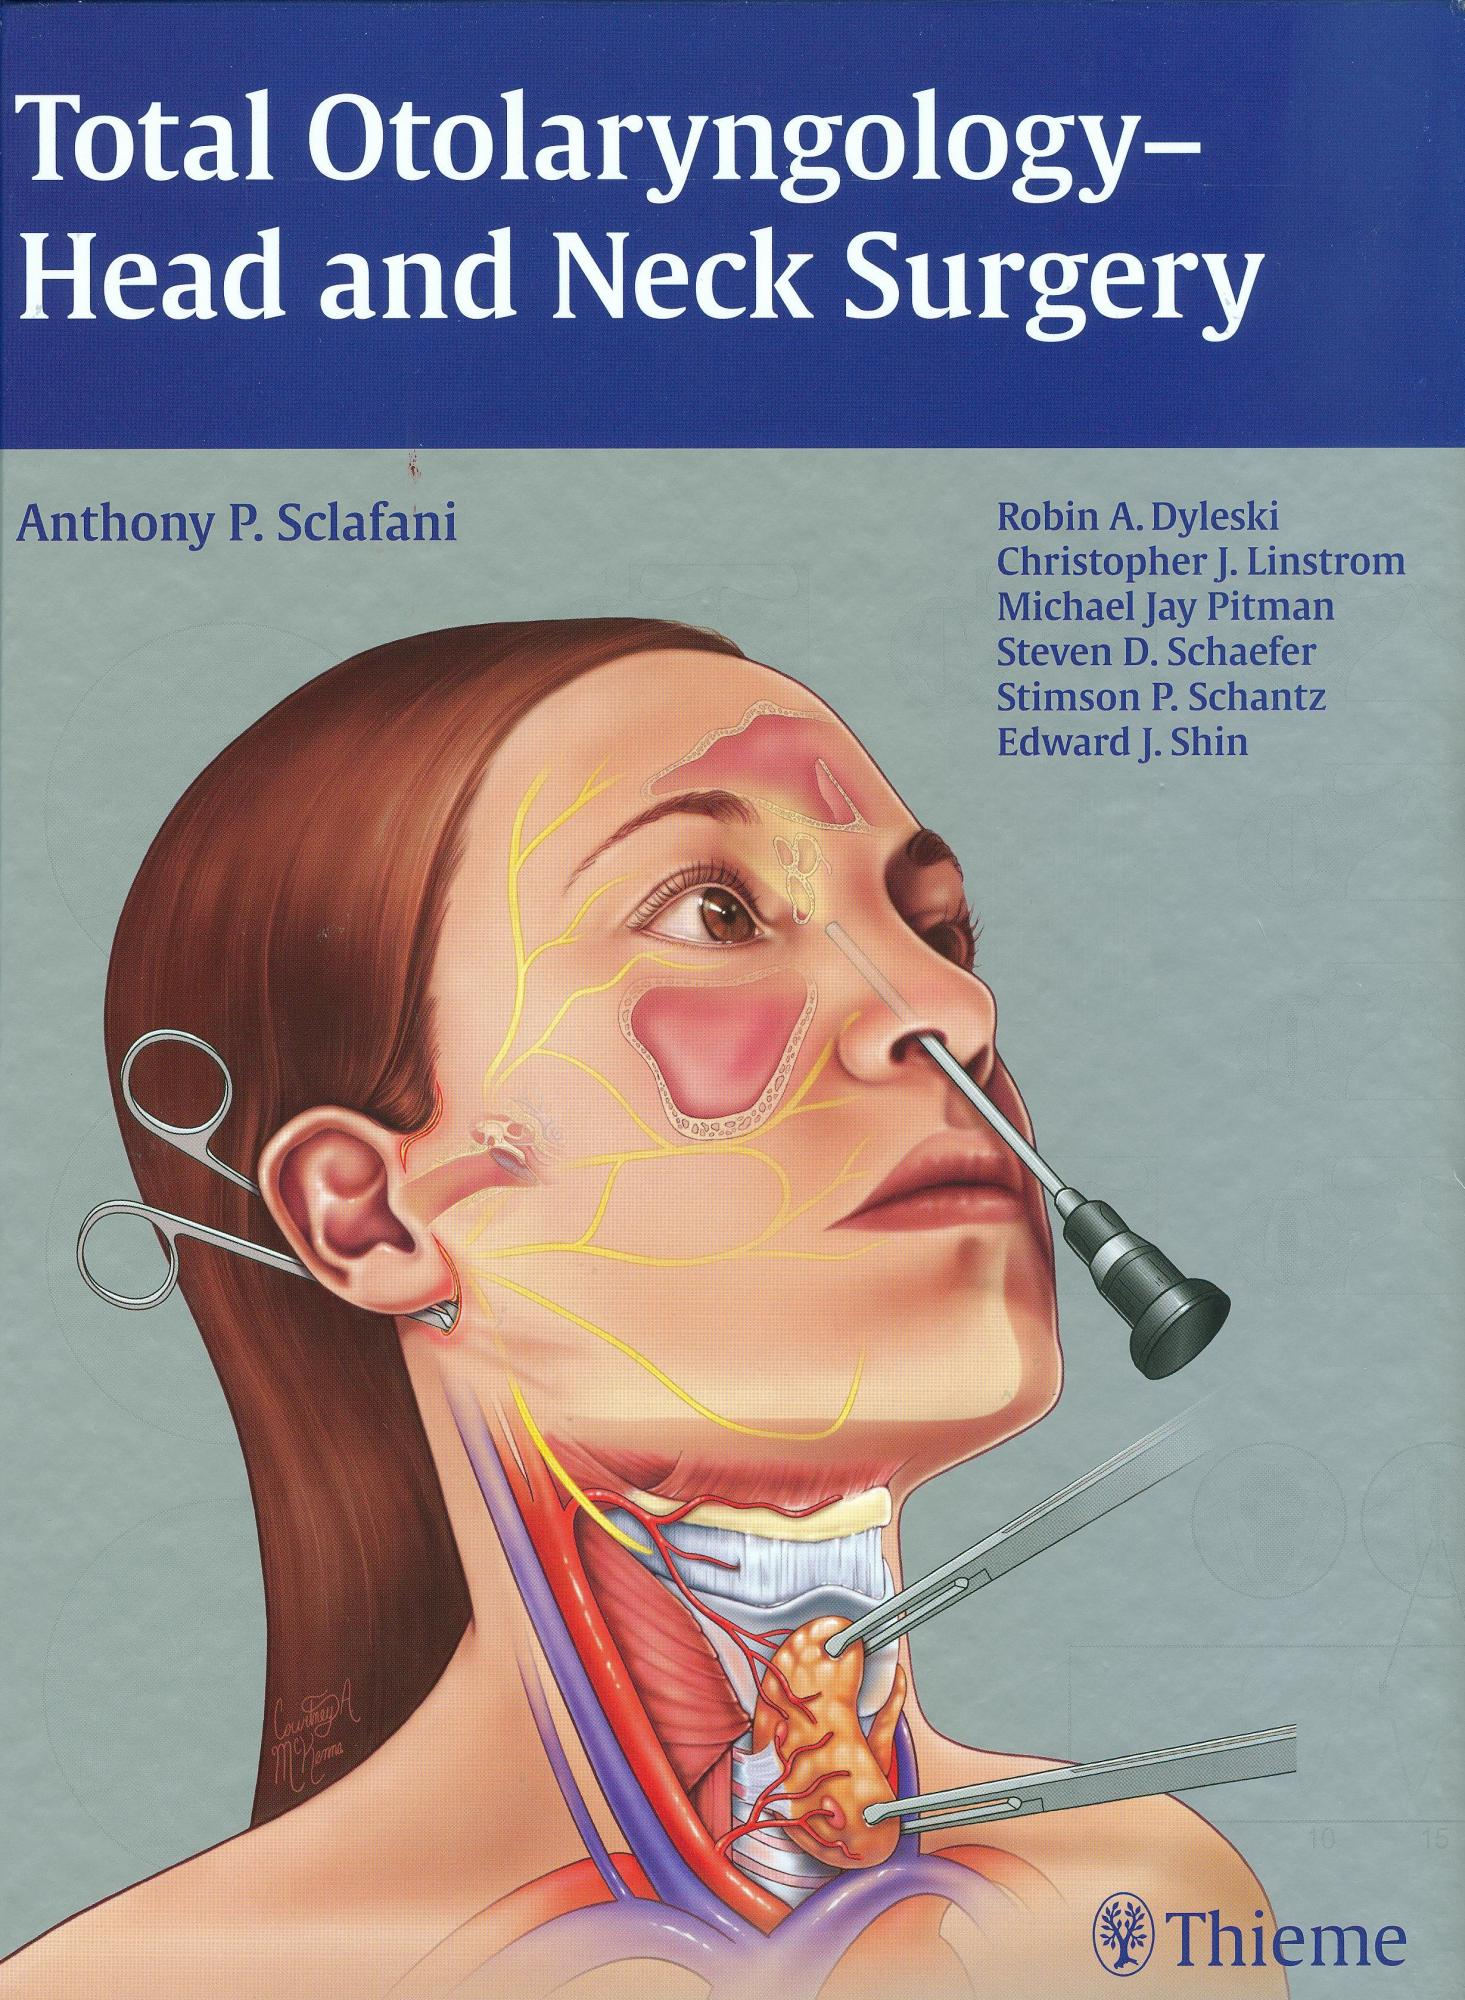 Total Otolaryngology – Head and Neck Surgery